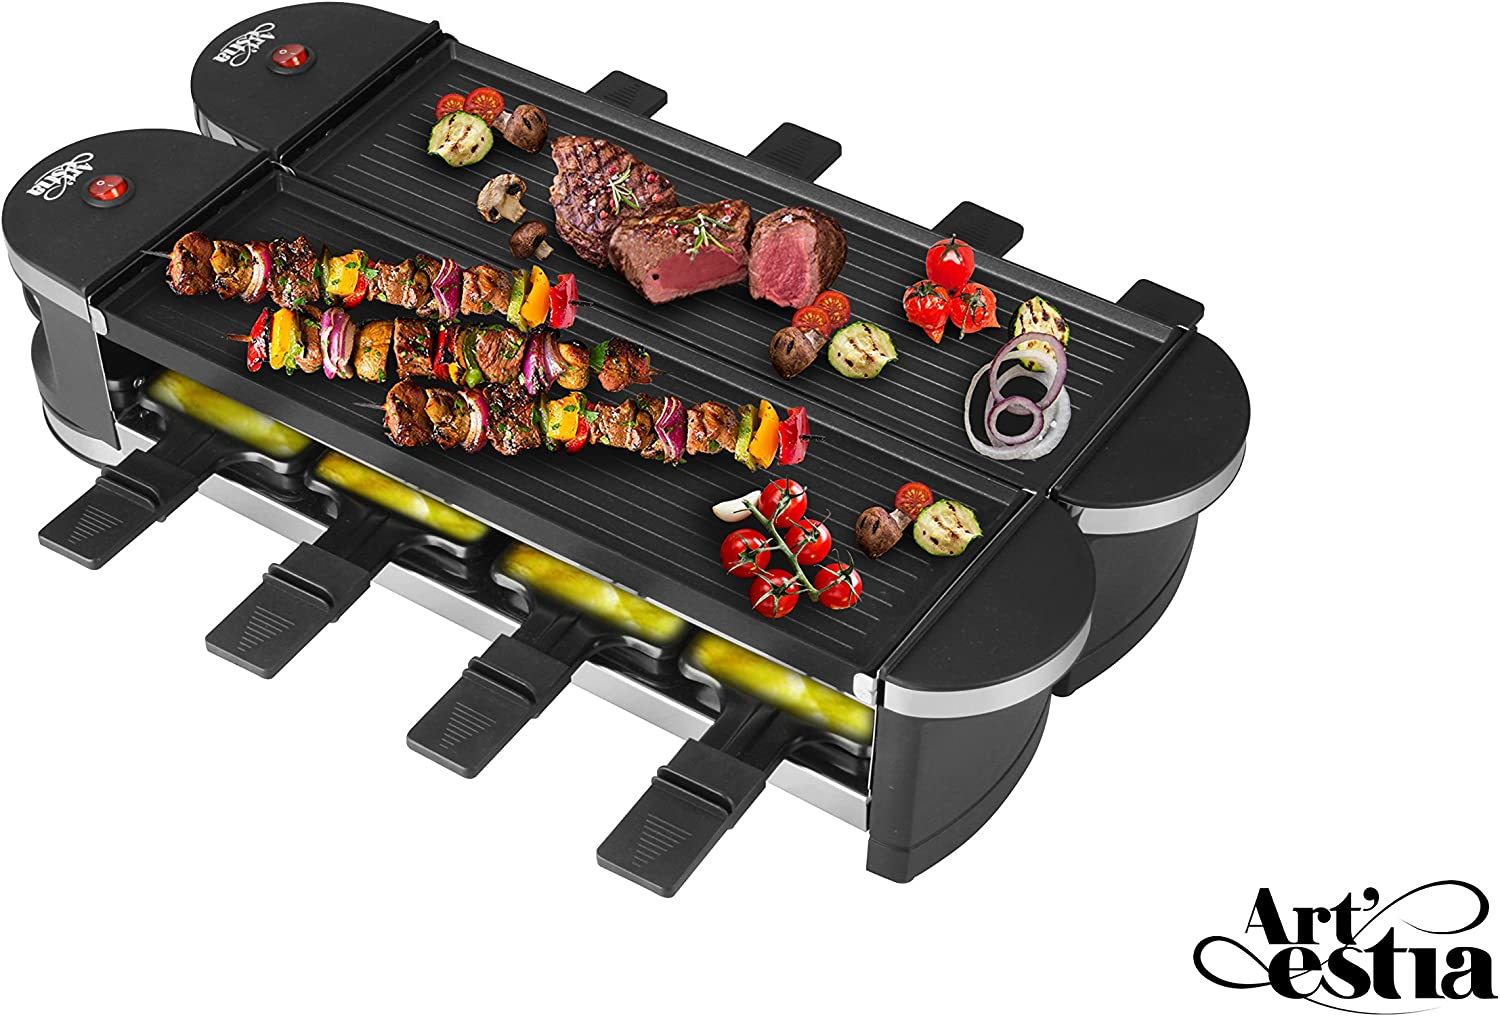 Artestia Electric Dual Raclette Grill with Cast Aluminum Reversible Grill Plate, Easy Setup in 360 Rotation, Serve the whole family Reversible Aluminum Grill Plate